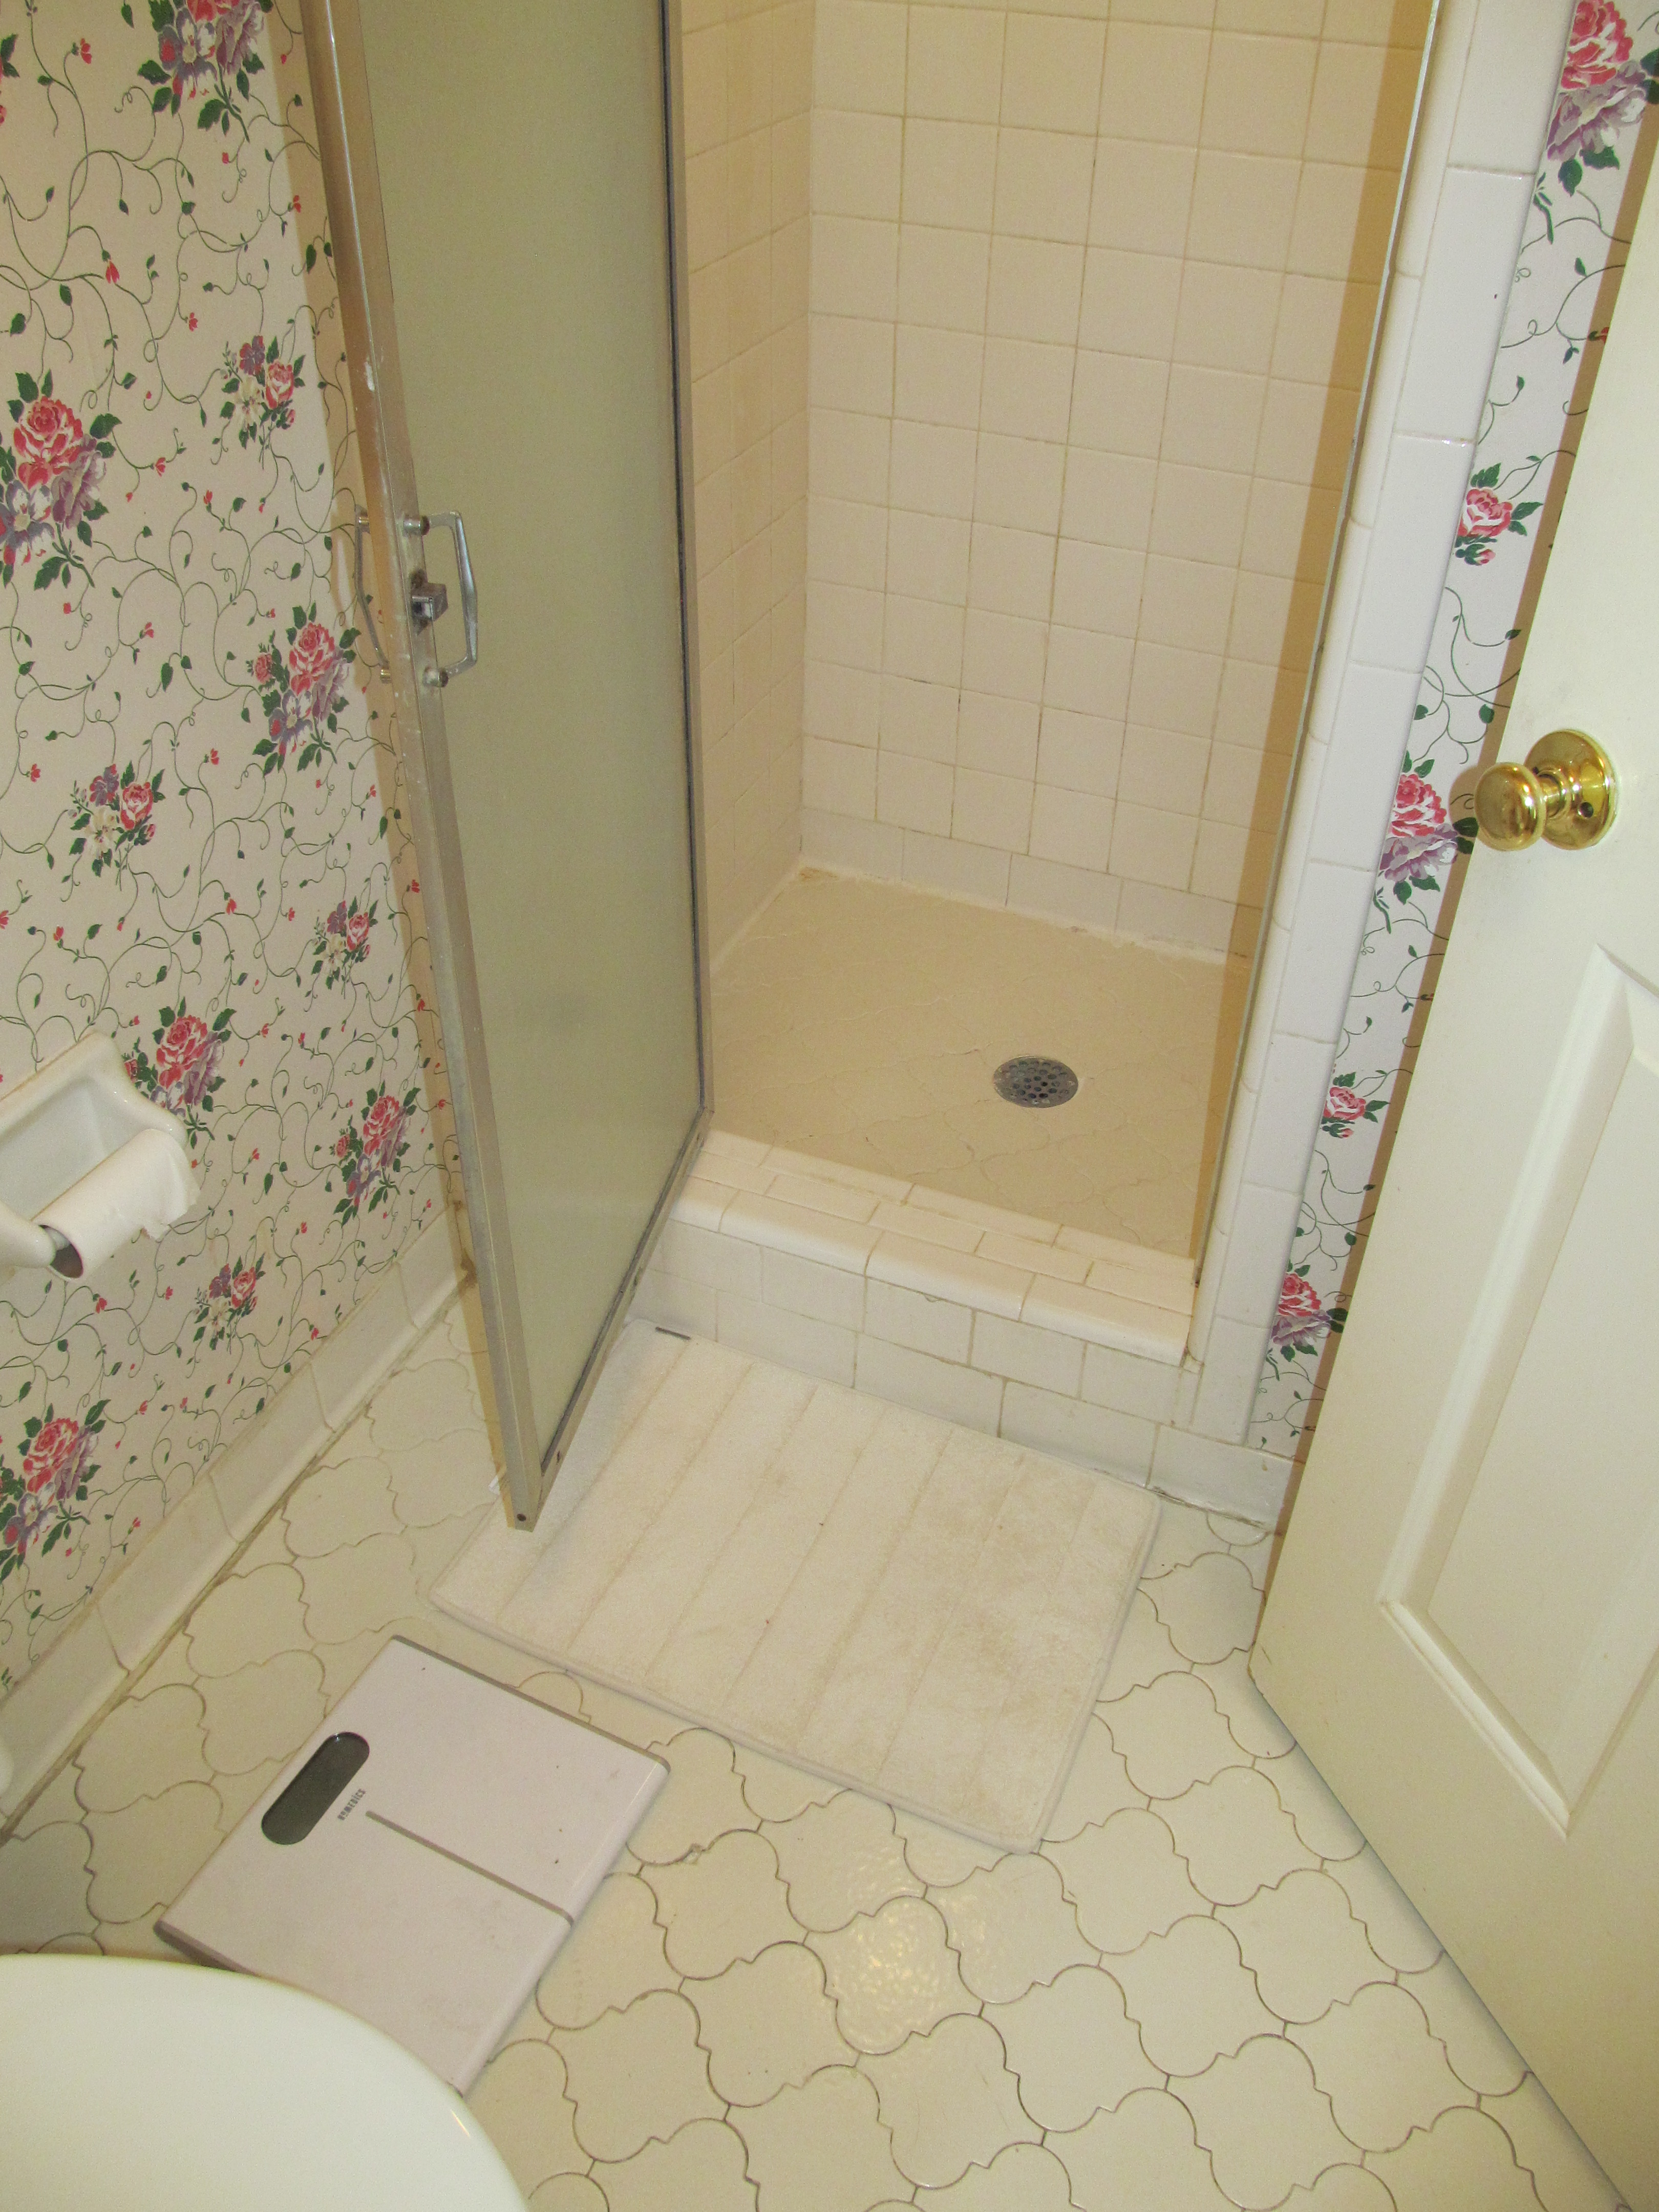 Previous Shower